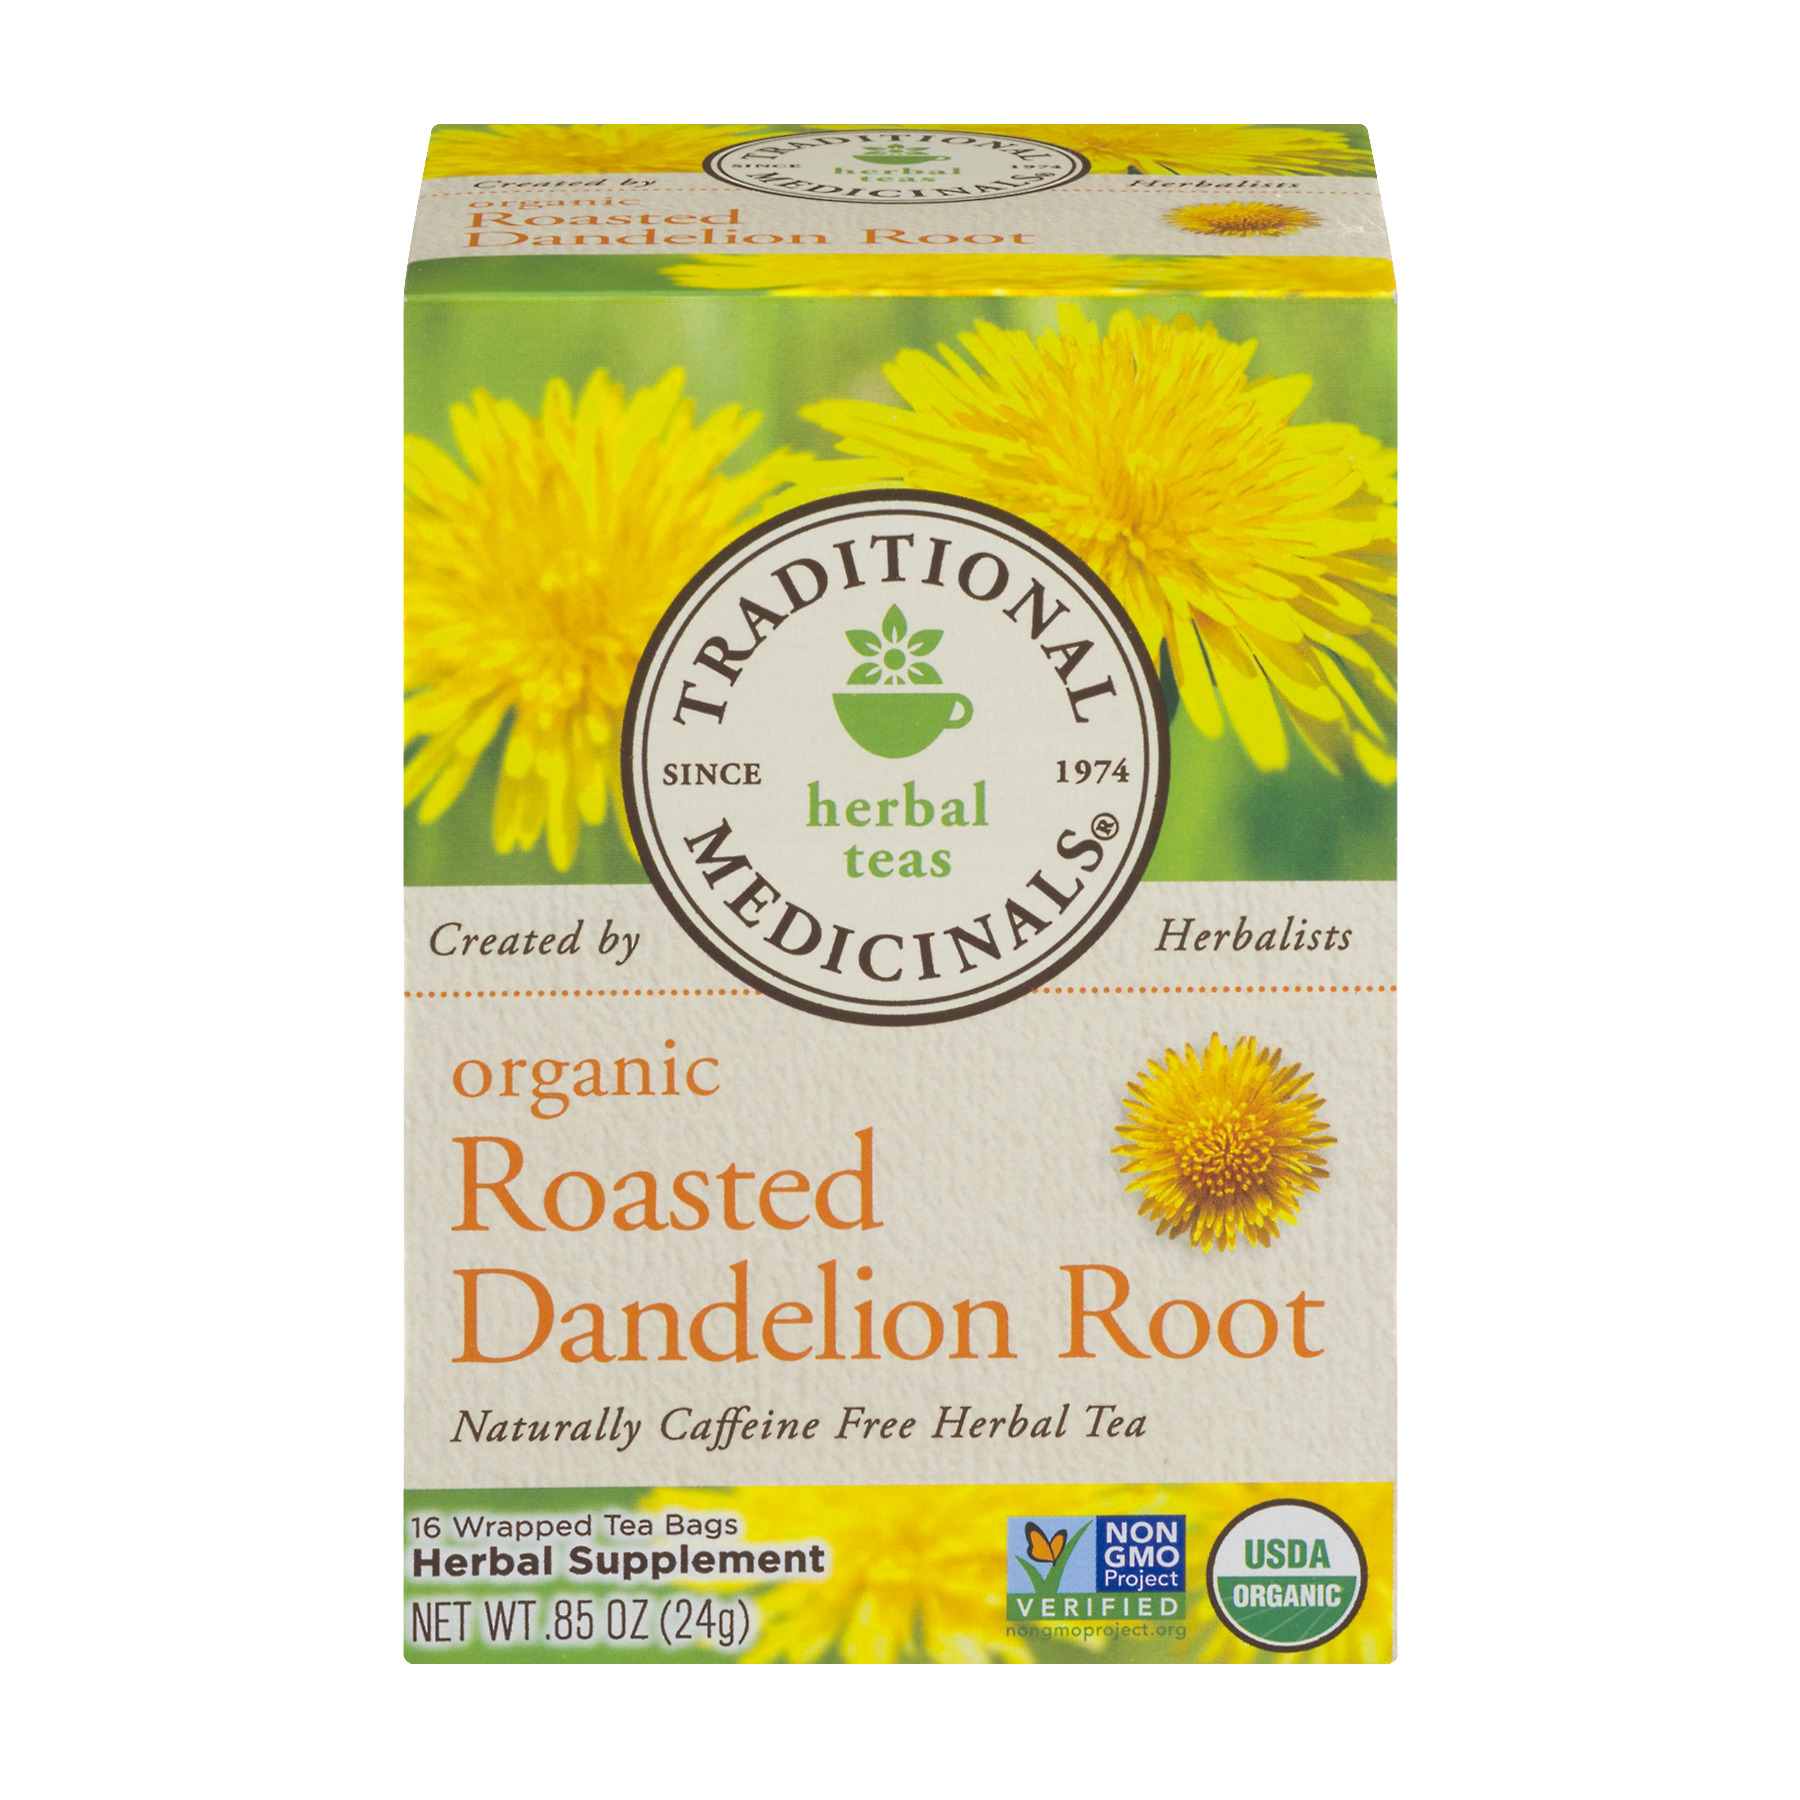 TRADITIONAL MEDICINAL ROASTED DANDELION ROOT